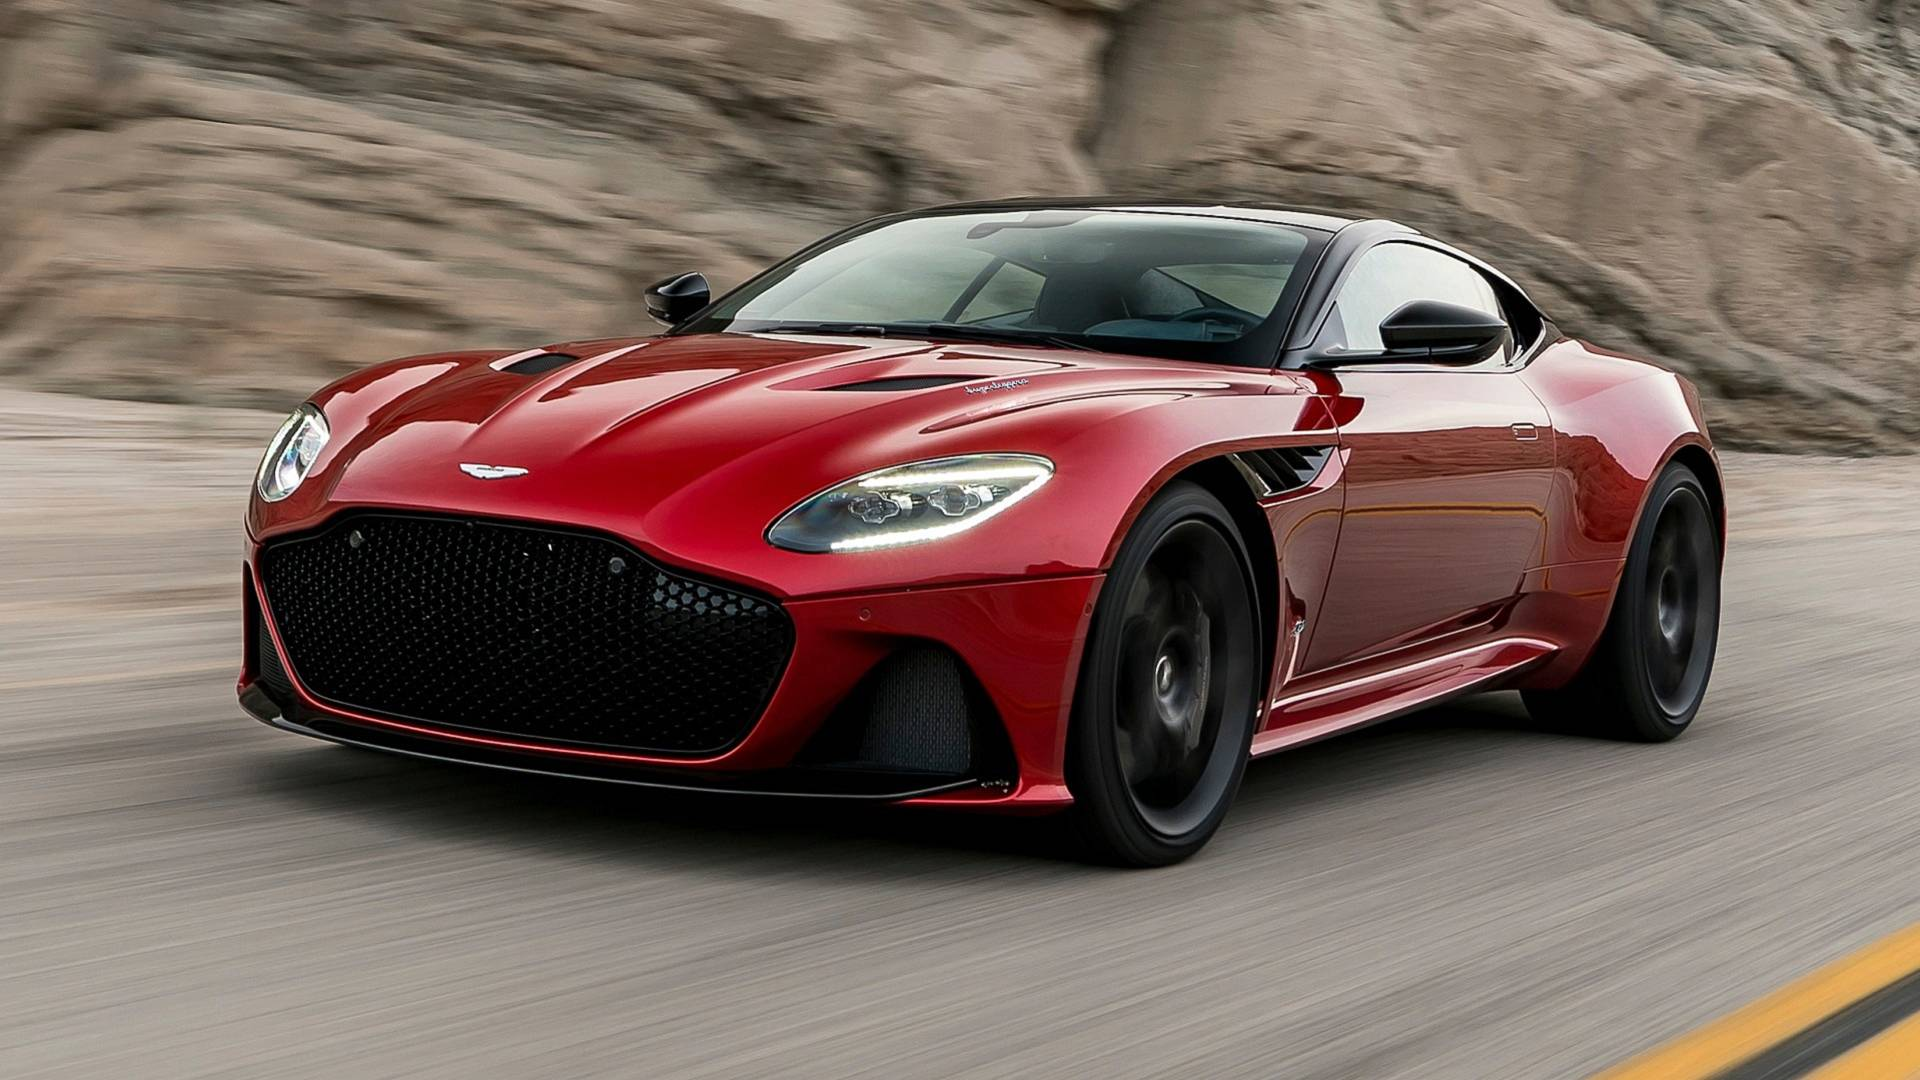 Aston Martin Dbs Superleggera Is A V12 Flagship Monster